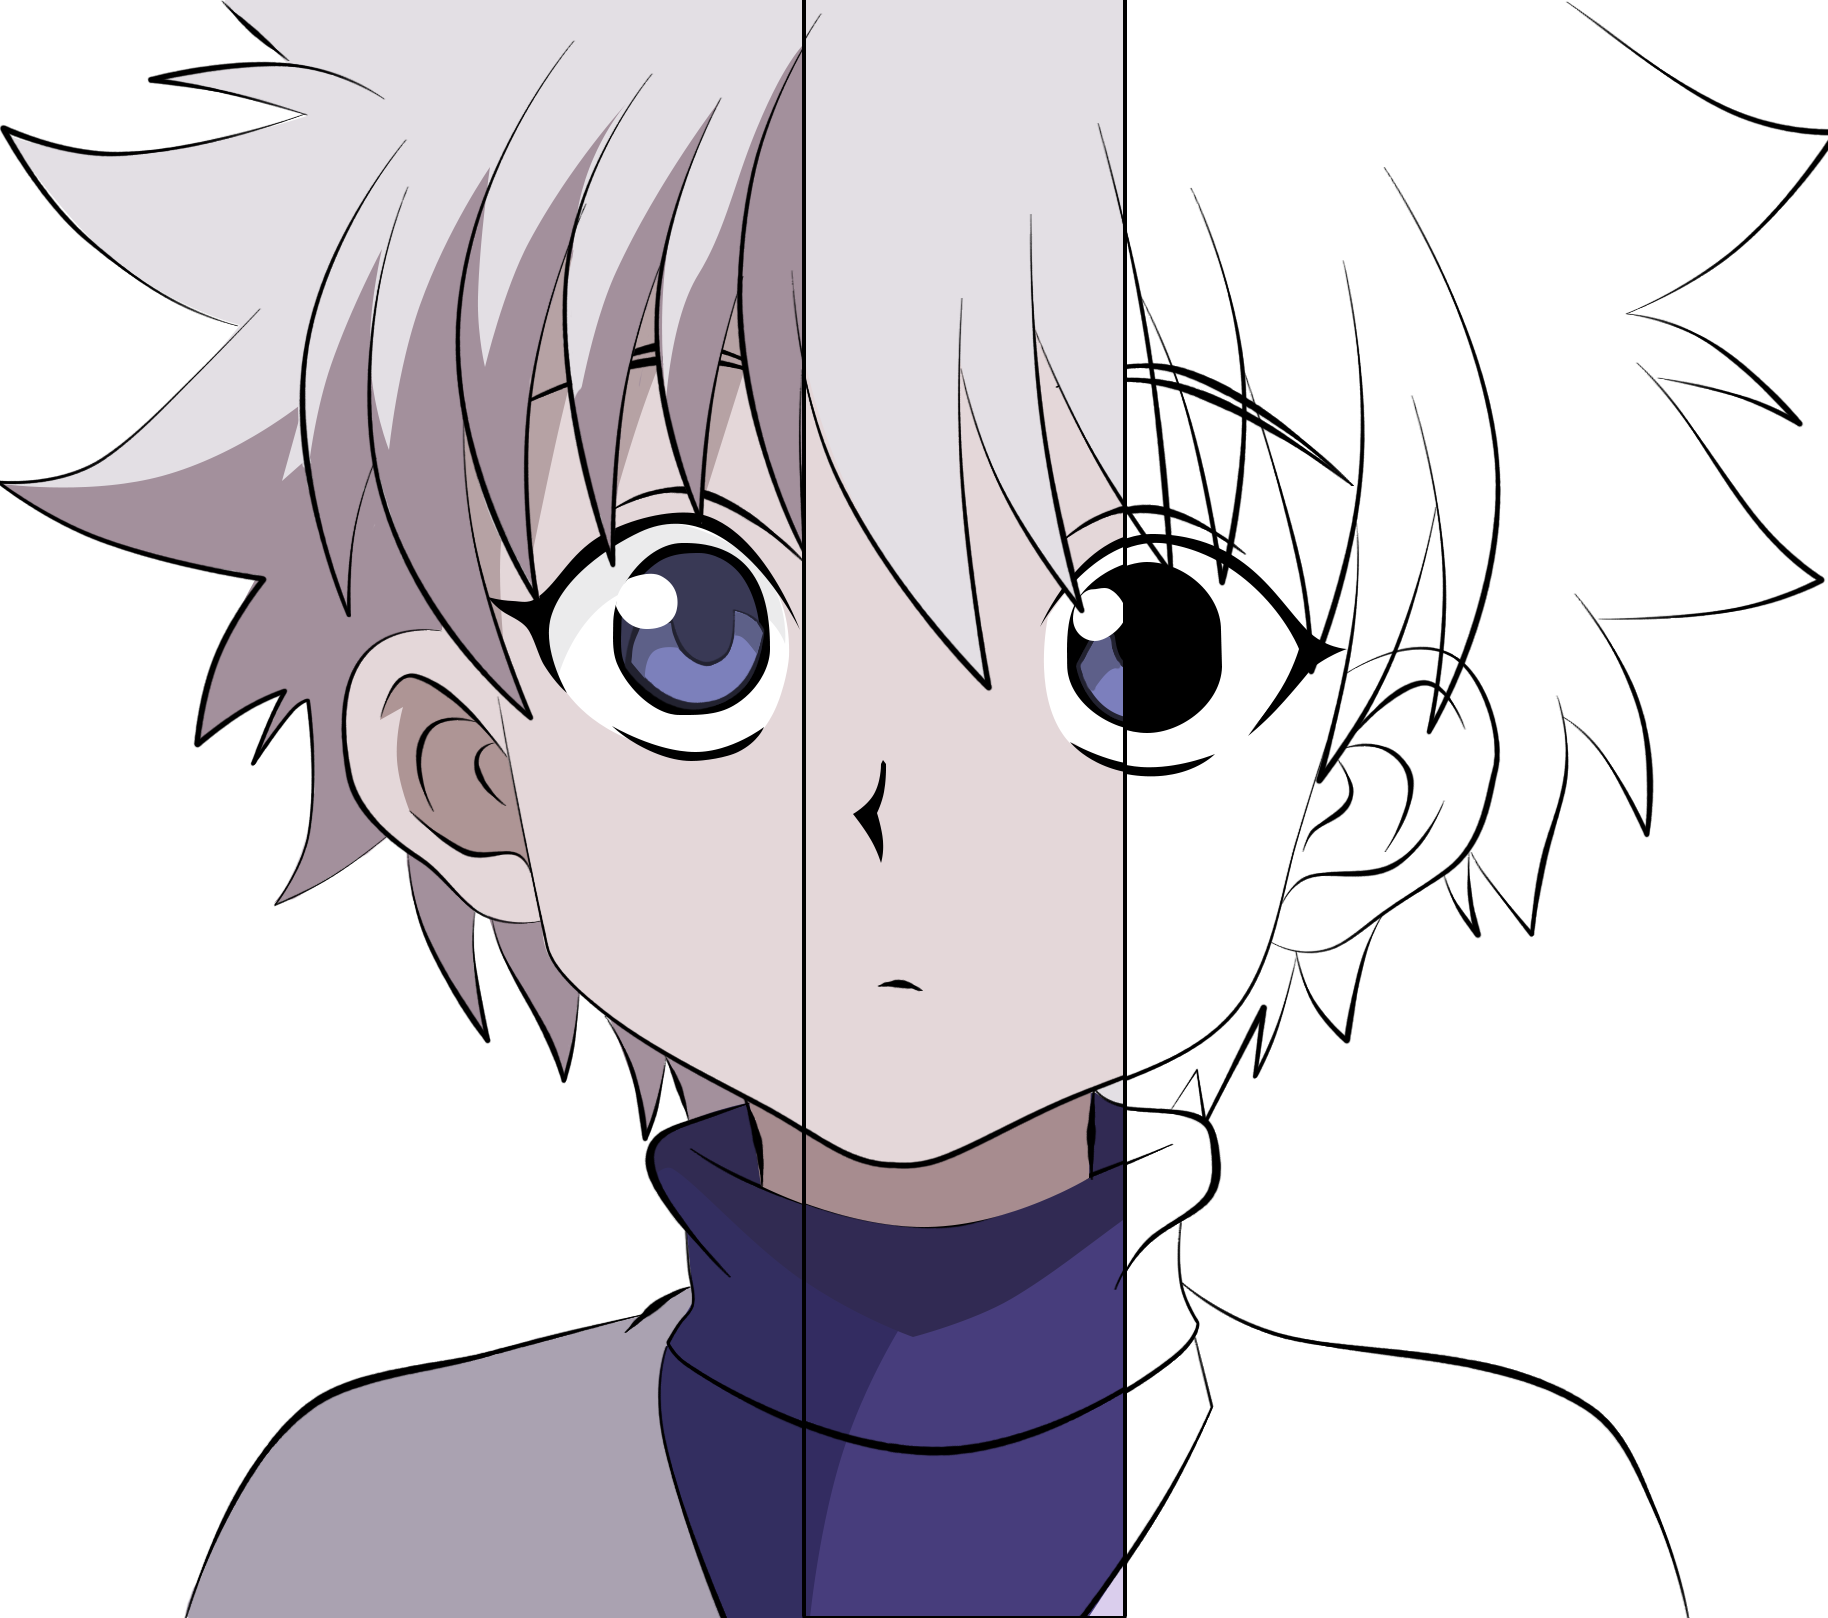 graphic free download Killua drawing. My vector from start